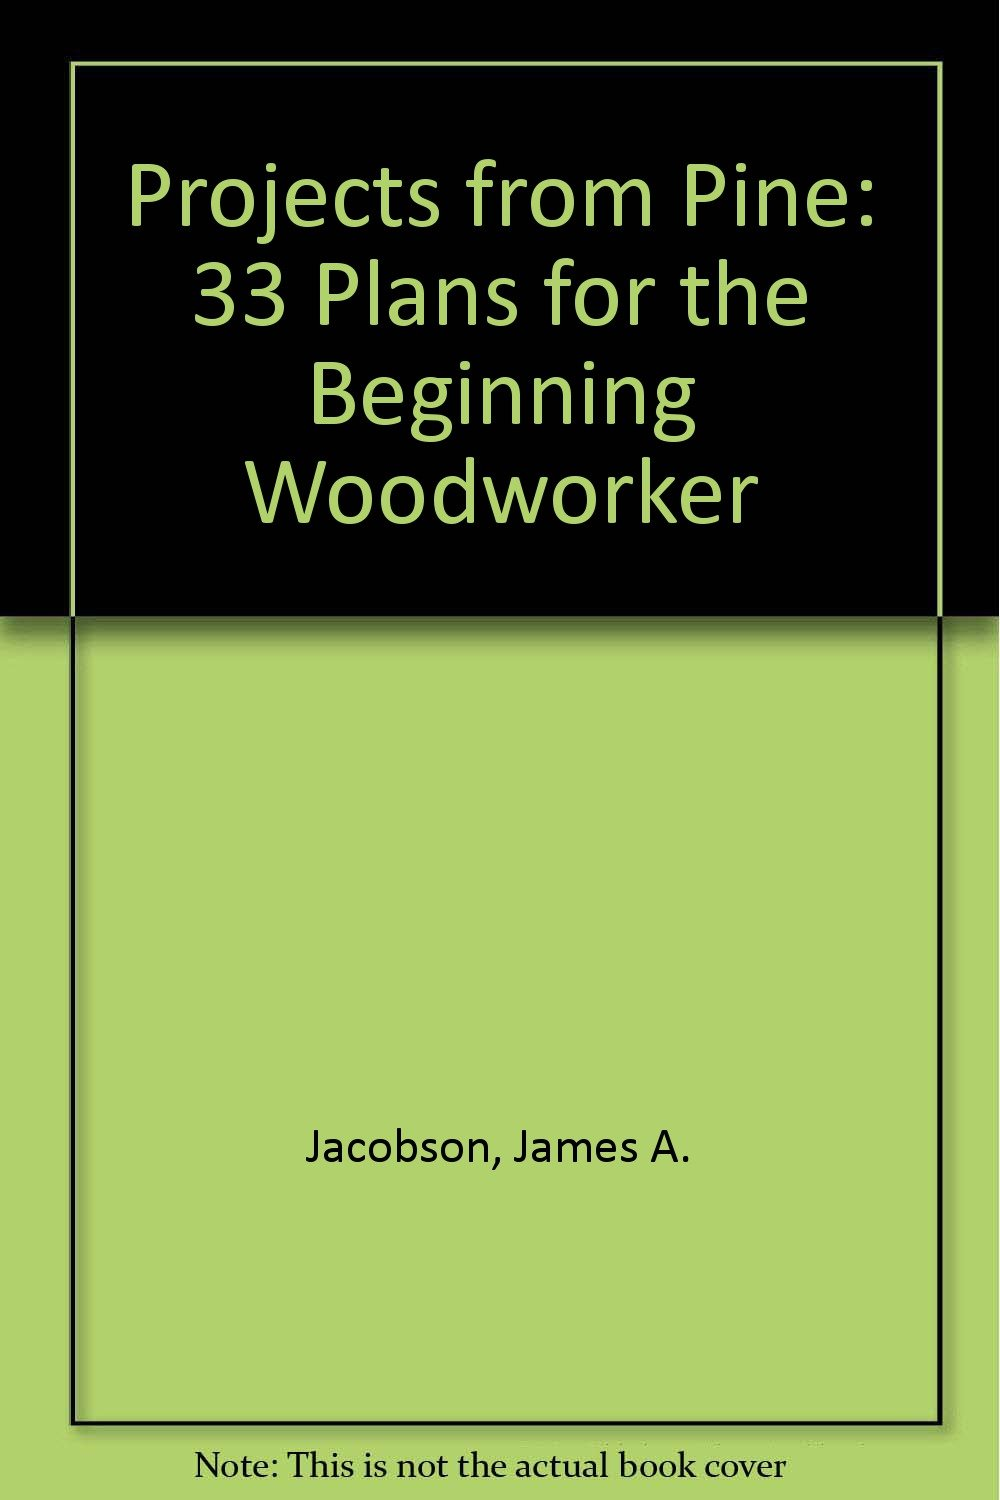 Projects from Pine-33 Plans for the Beginning Woodworker